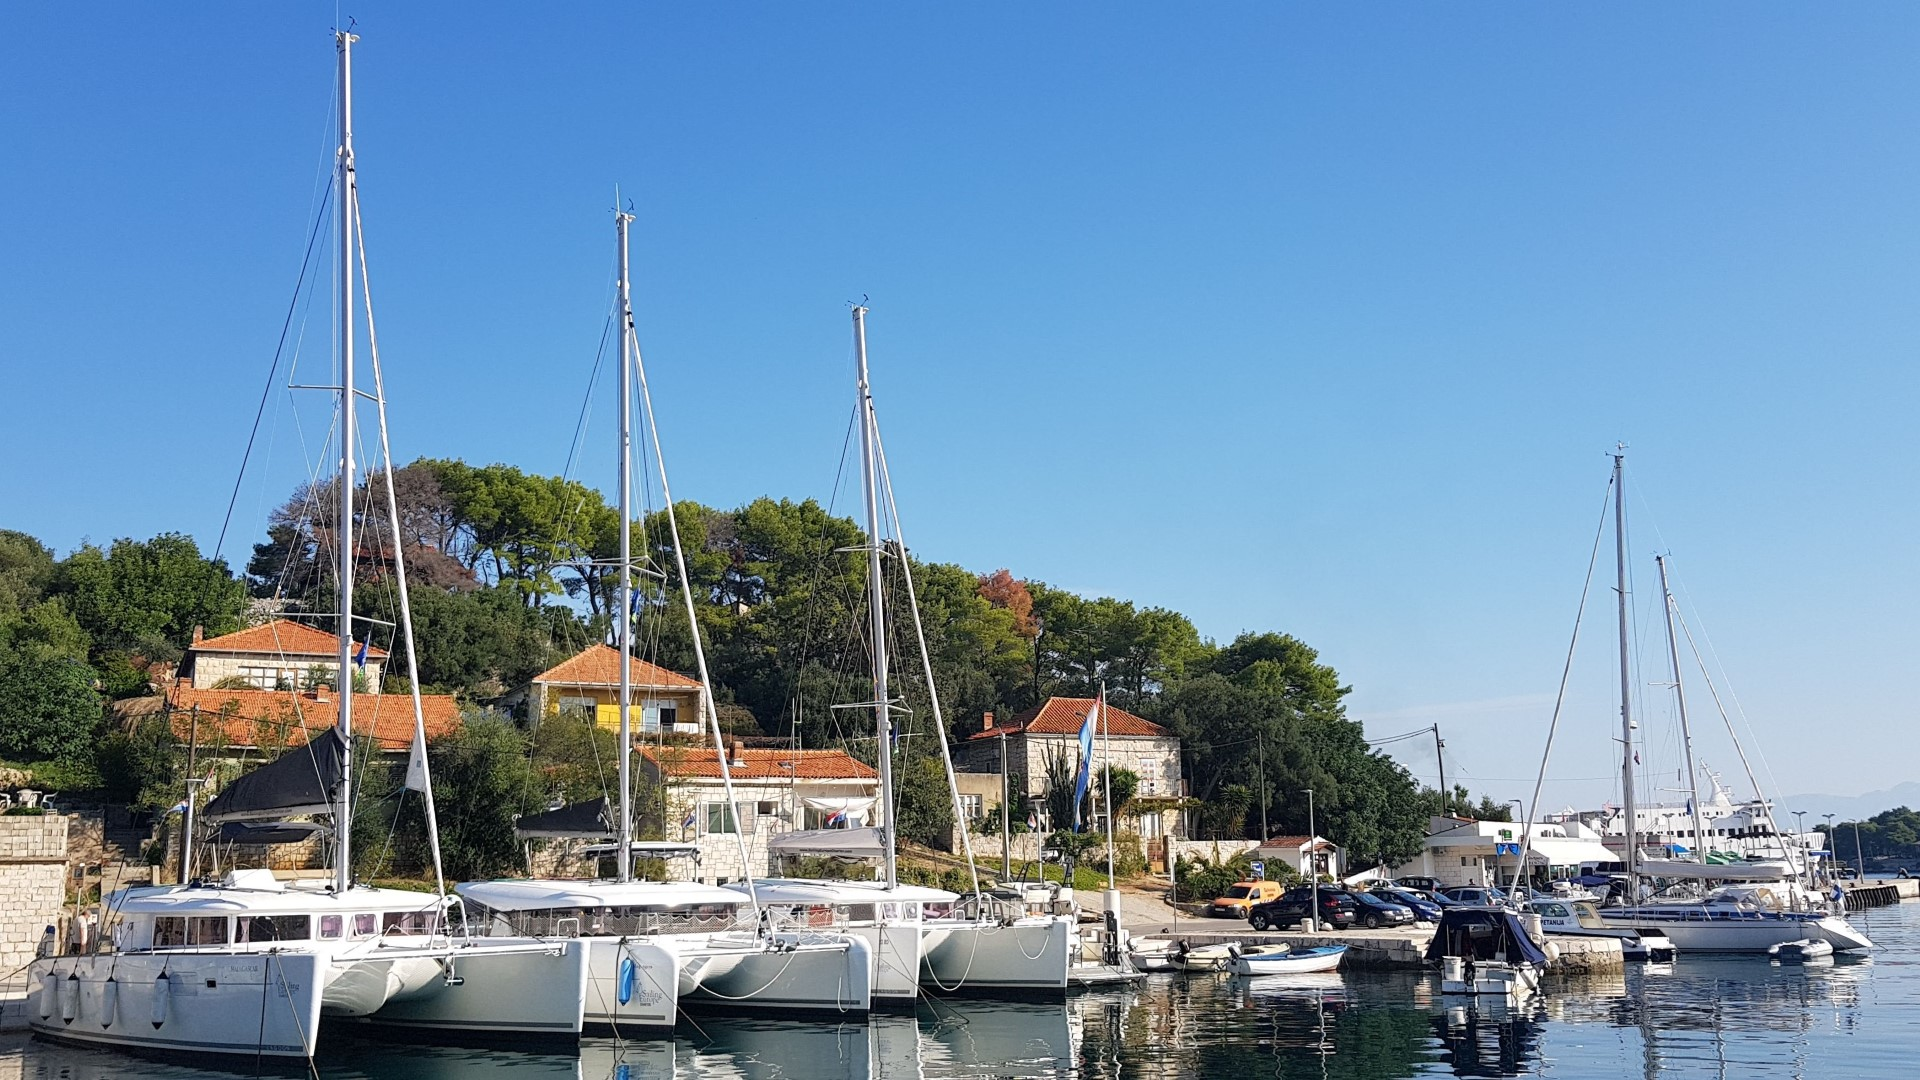 Marina Rogač - catamarans (photo taken 2019)